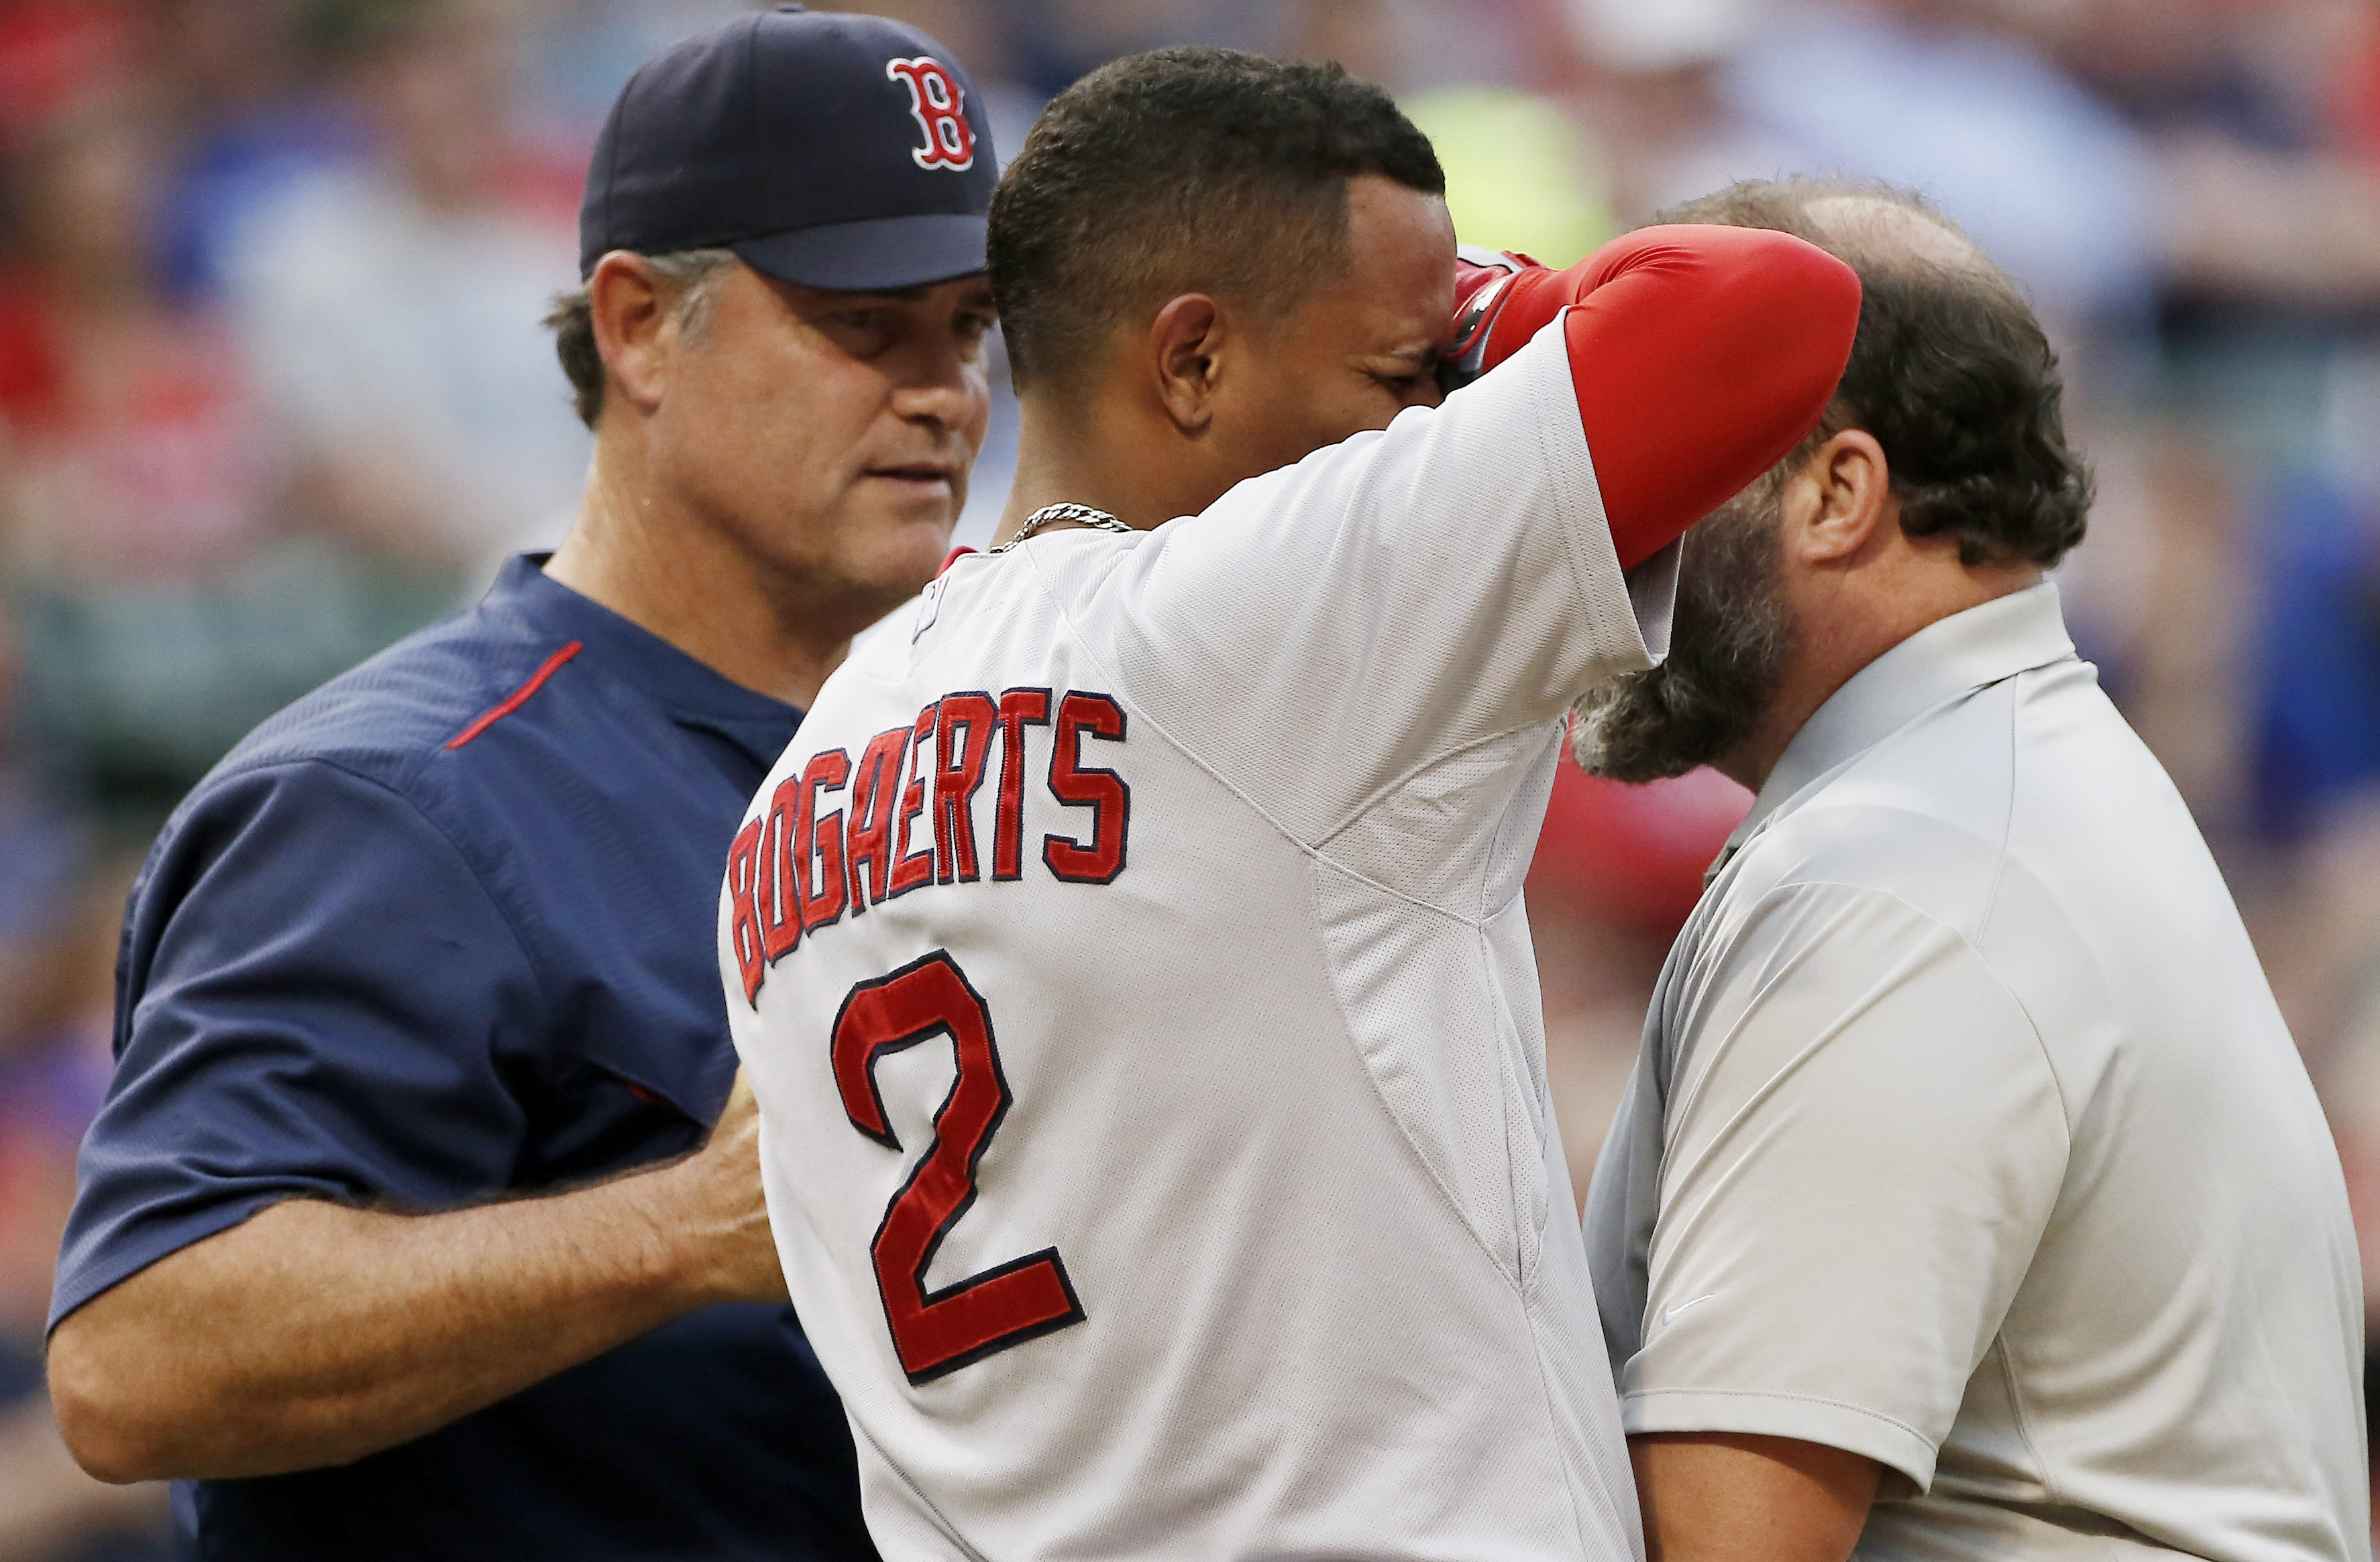 Boston Red Sox Xander Bogaerts (2) is tended to by manager John Farrell, left, and a trainer after being hit by a pitch in the left wrist during the second inning of a baseball game against the Texas Rangers, Thursday, May 28, 2015, in Arlington, Texas. (